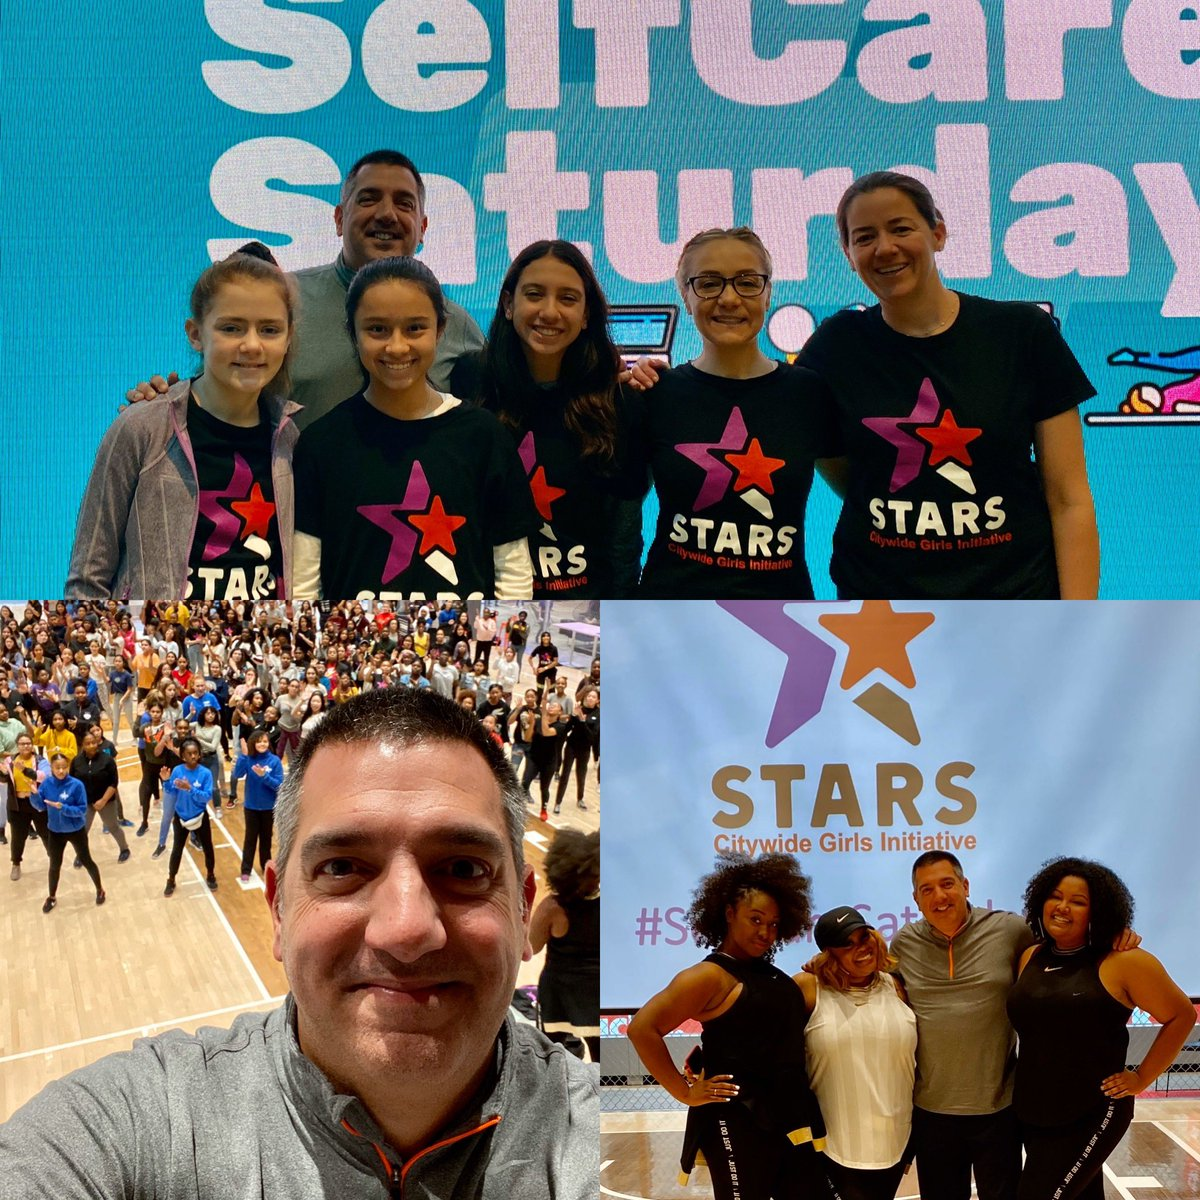 My daughter Olivia & I along with @alvarezmarsal are so proud to support @PowerPlayNYC & #StarsCGI on #selfcaresaturday - special thanks to our host @Nike along with @IamPrettyBig for such a great event! @Vsantora1 #givingback #doingwellanddoinggood https://t.co/lODmC242RH